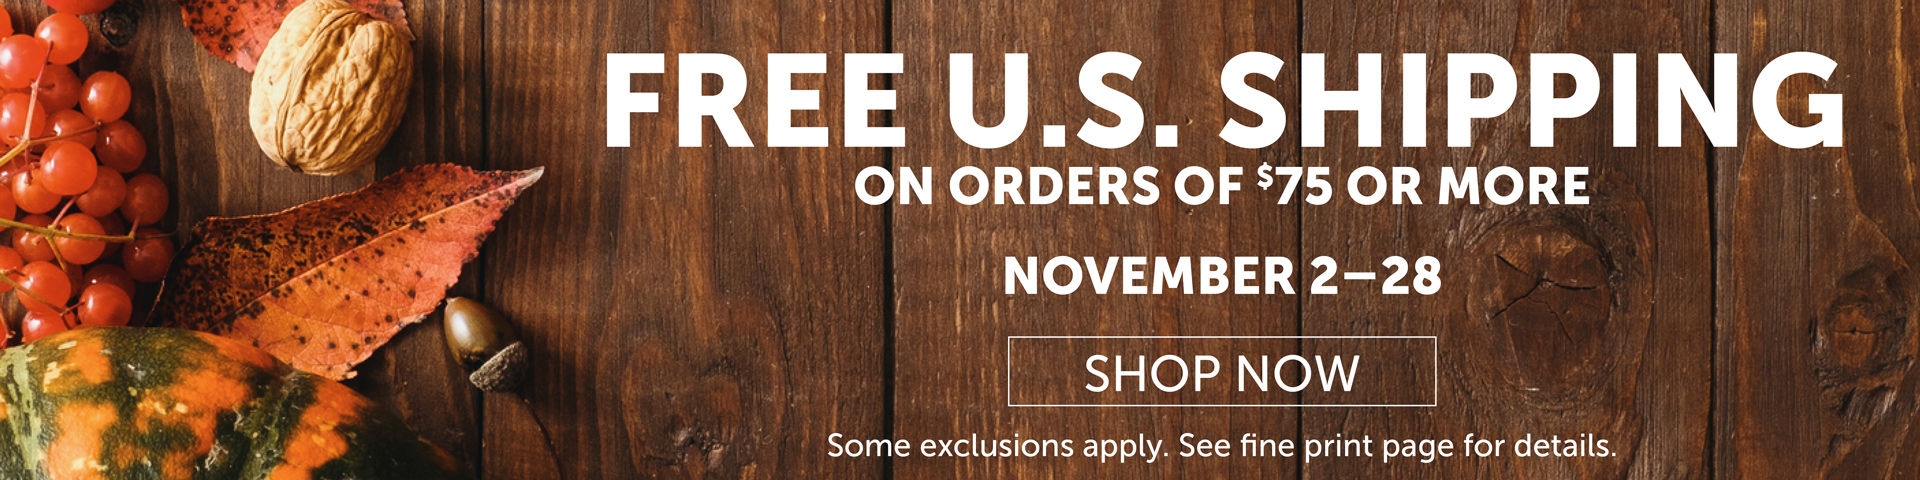 Free U.S. Shipping on Orders of $75 or more November 2–28.